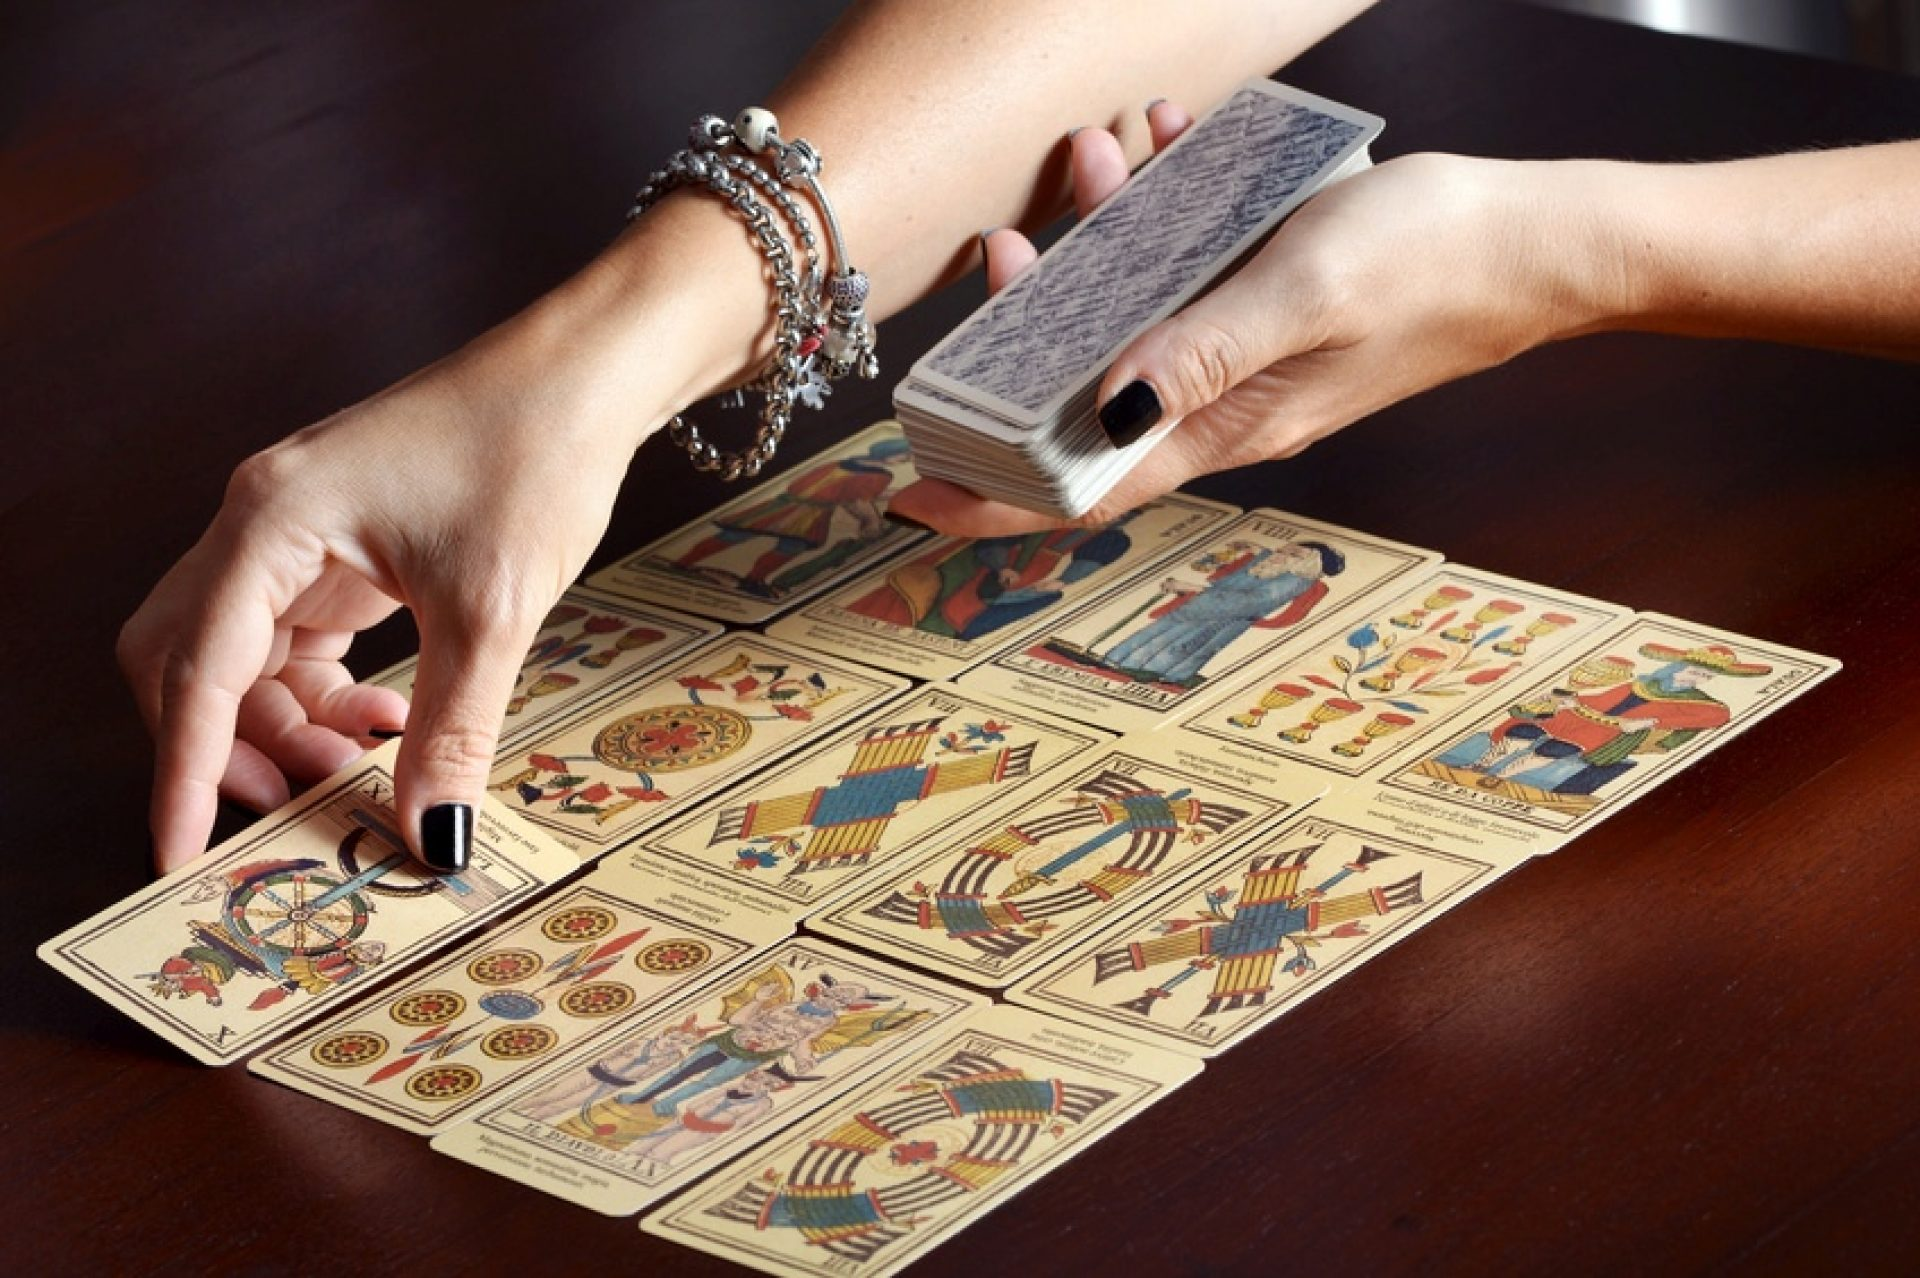 Female fortune tellers hands spreading vintage tarot cards on dark table surface